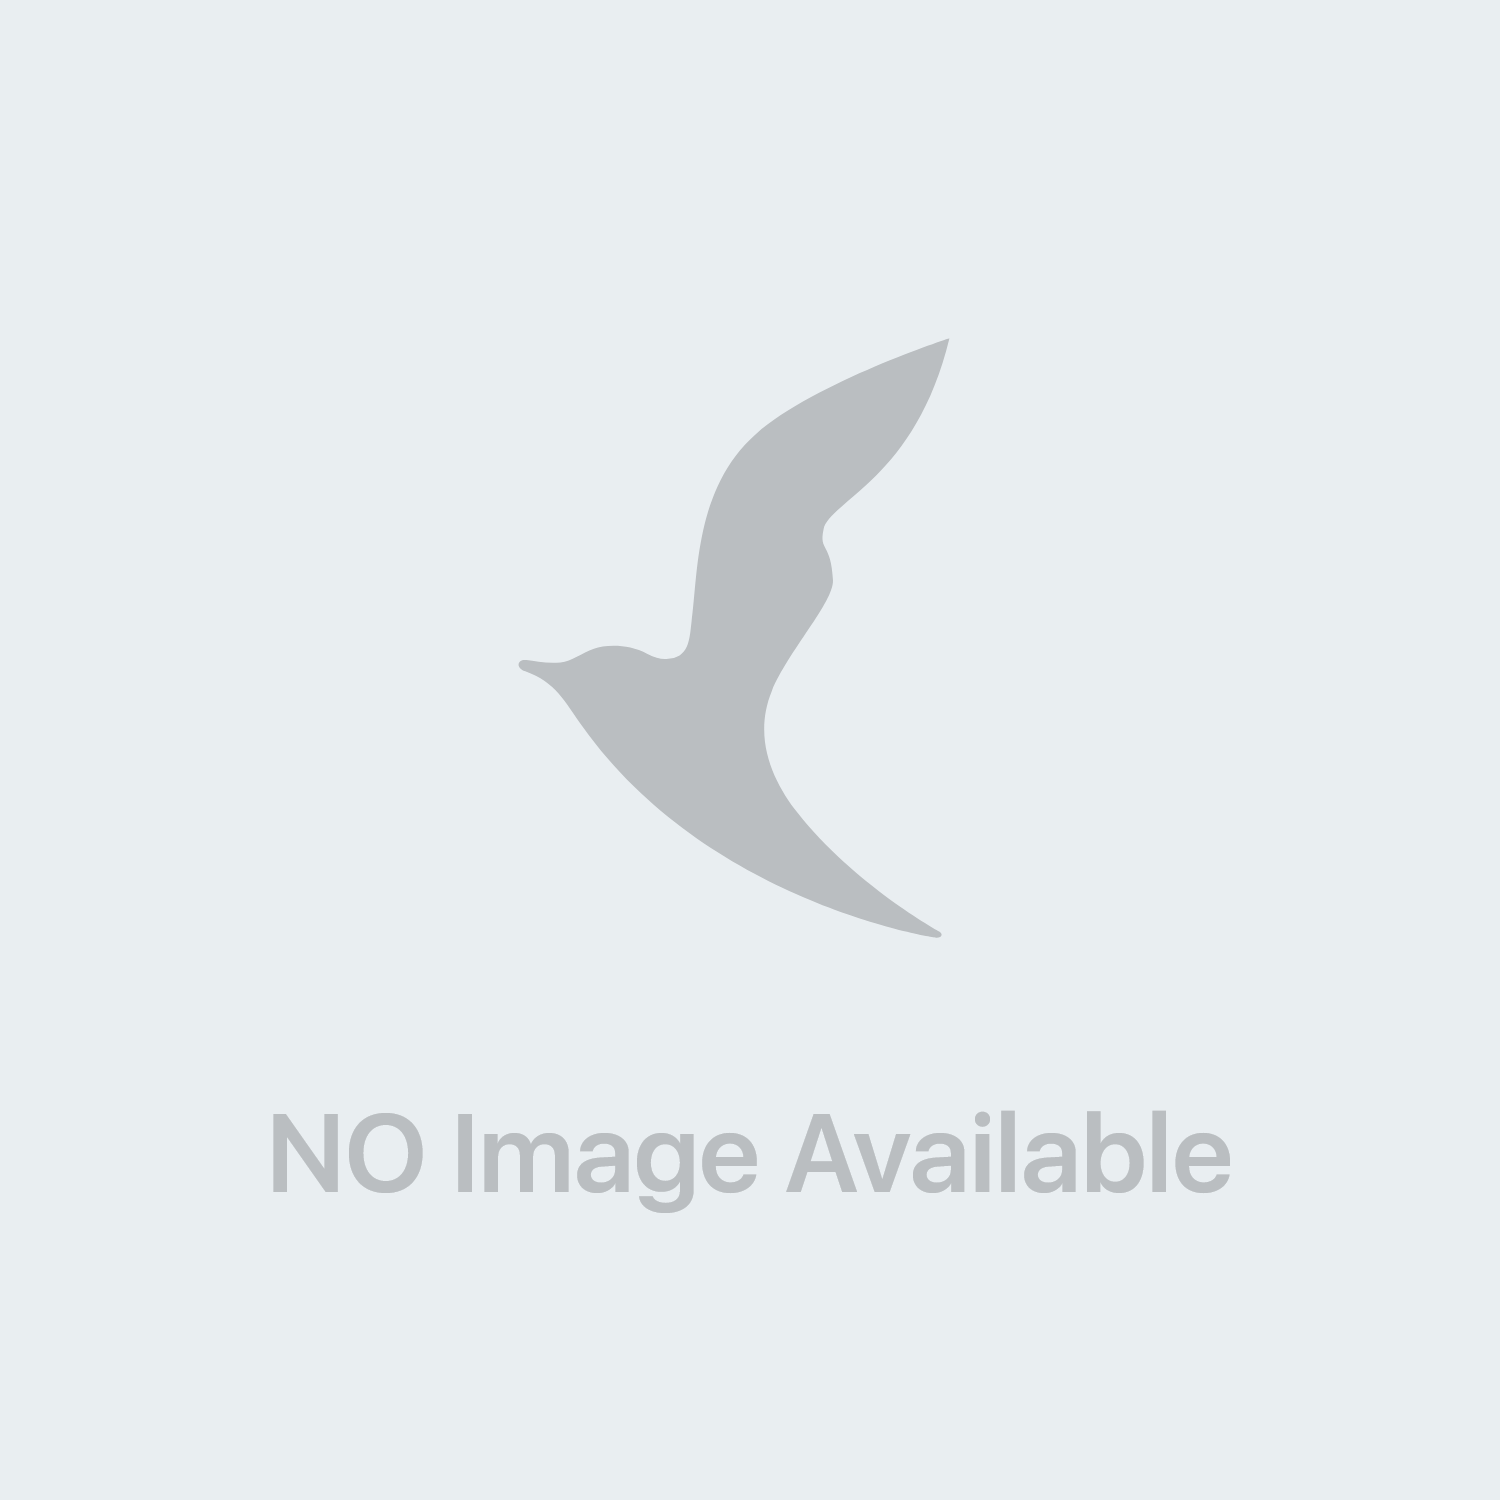 Neovis Plus Integratore Creatina 20 Bustine